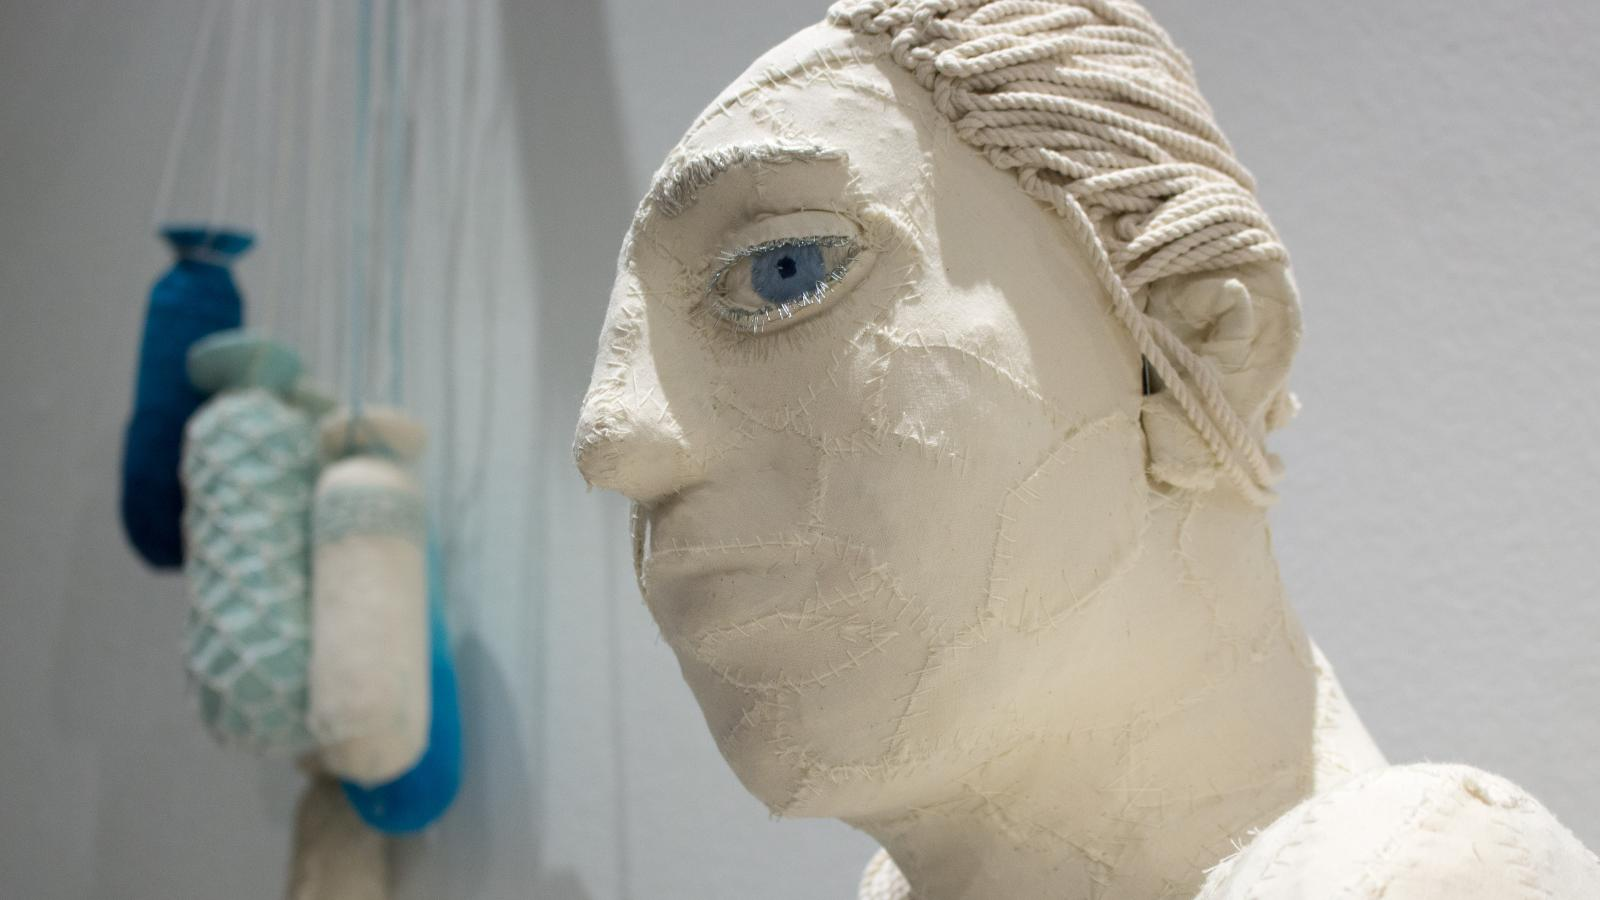 A white bust of a woman with one giant blue eye